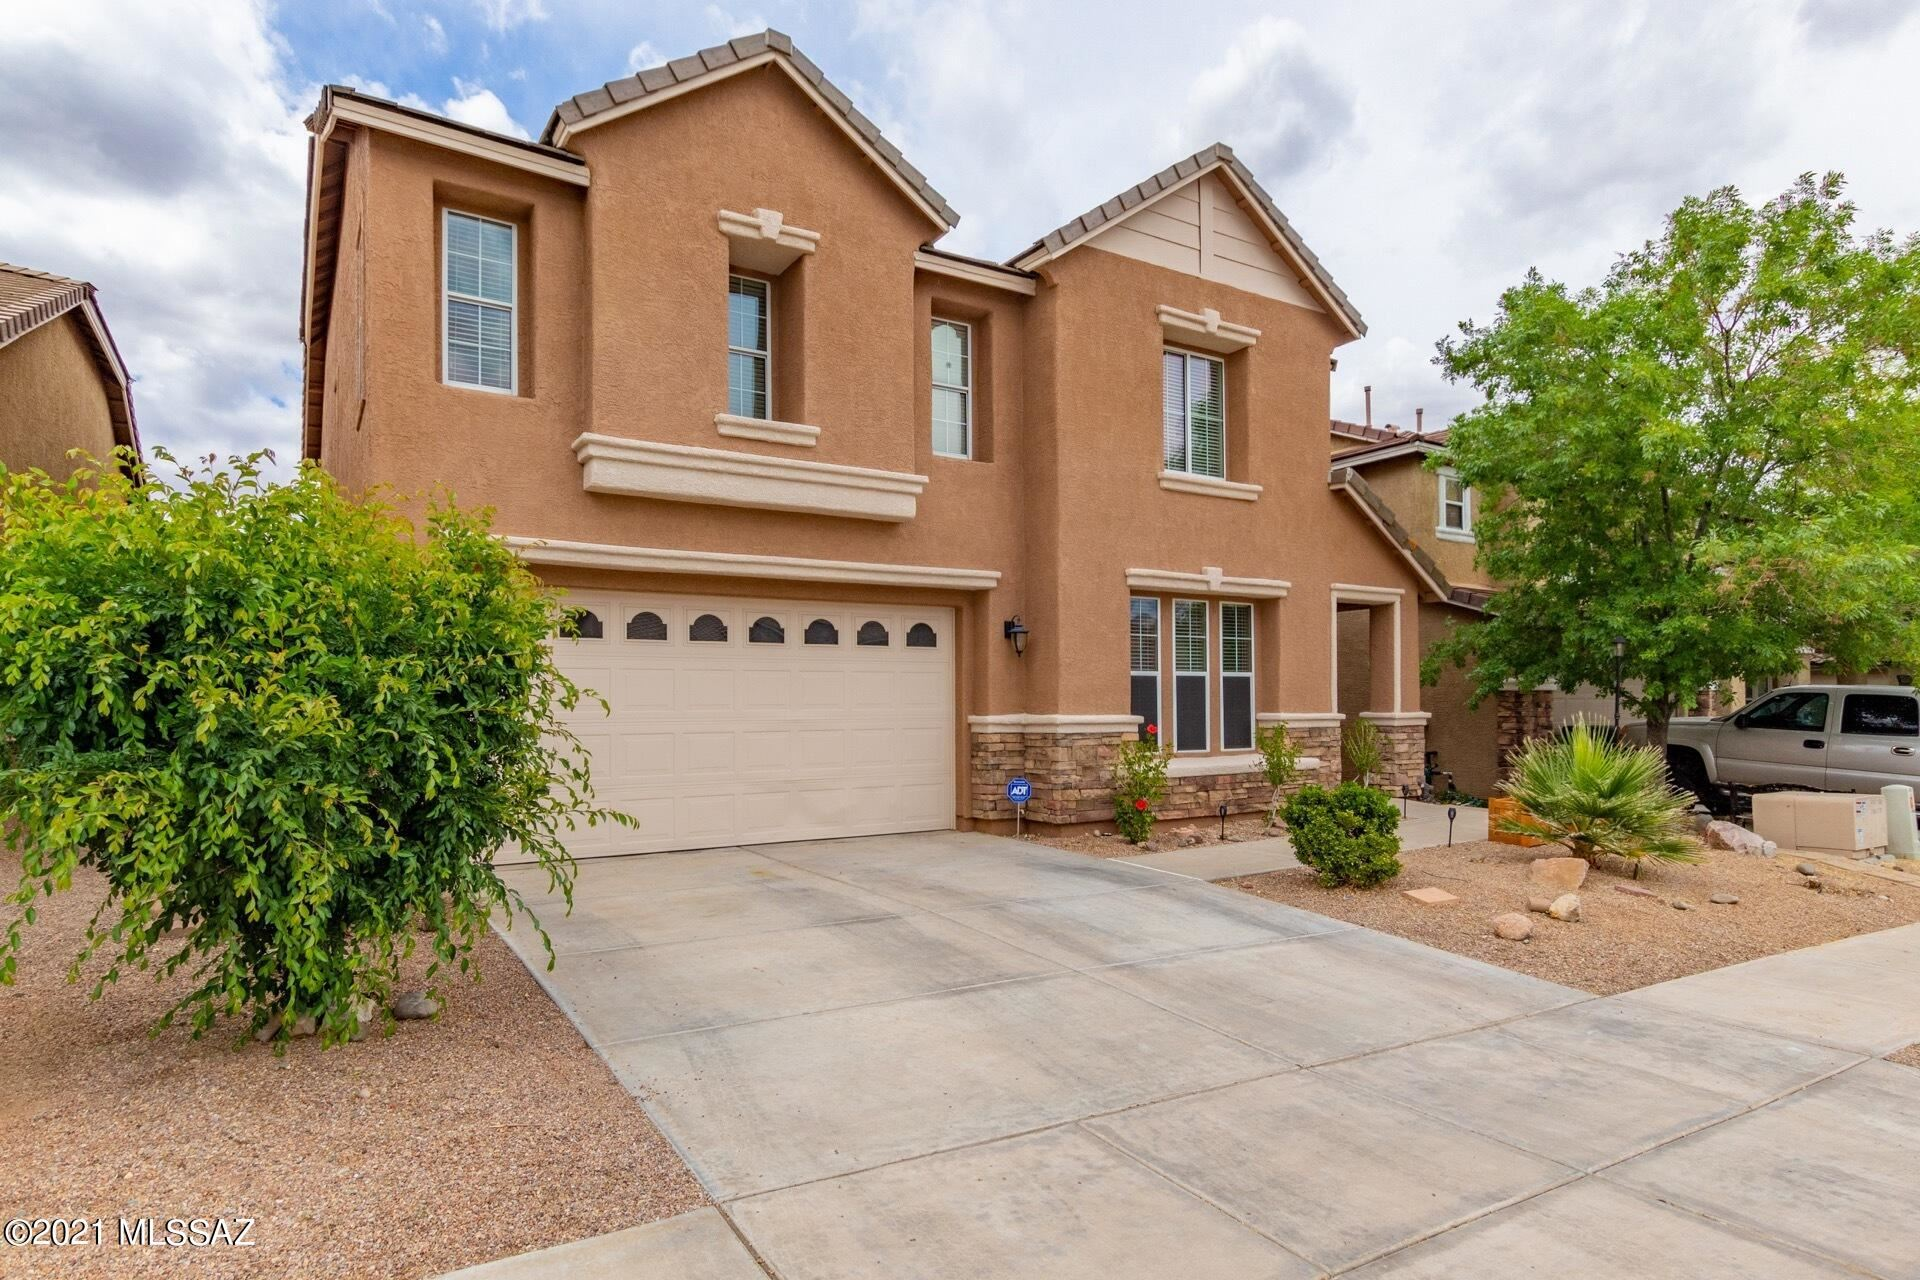 10995 E Pima Creek Drive, Vail, AZ 85641 - MLS#: 22111100